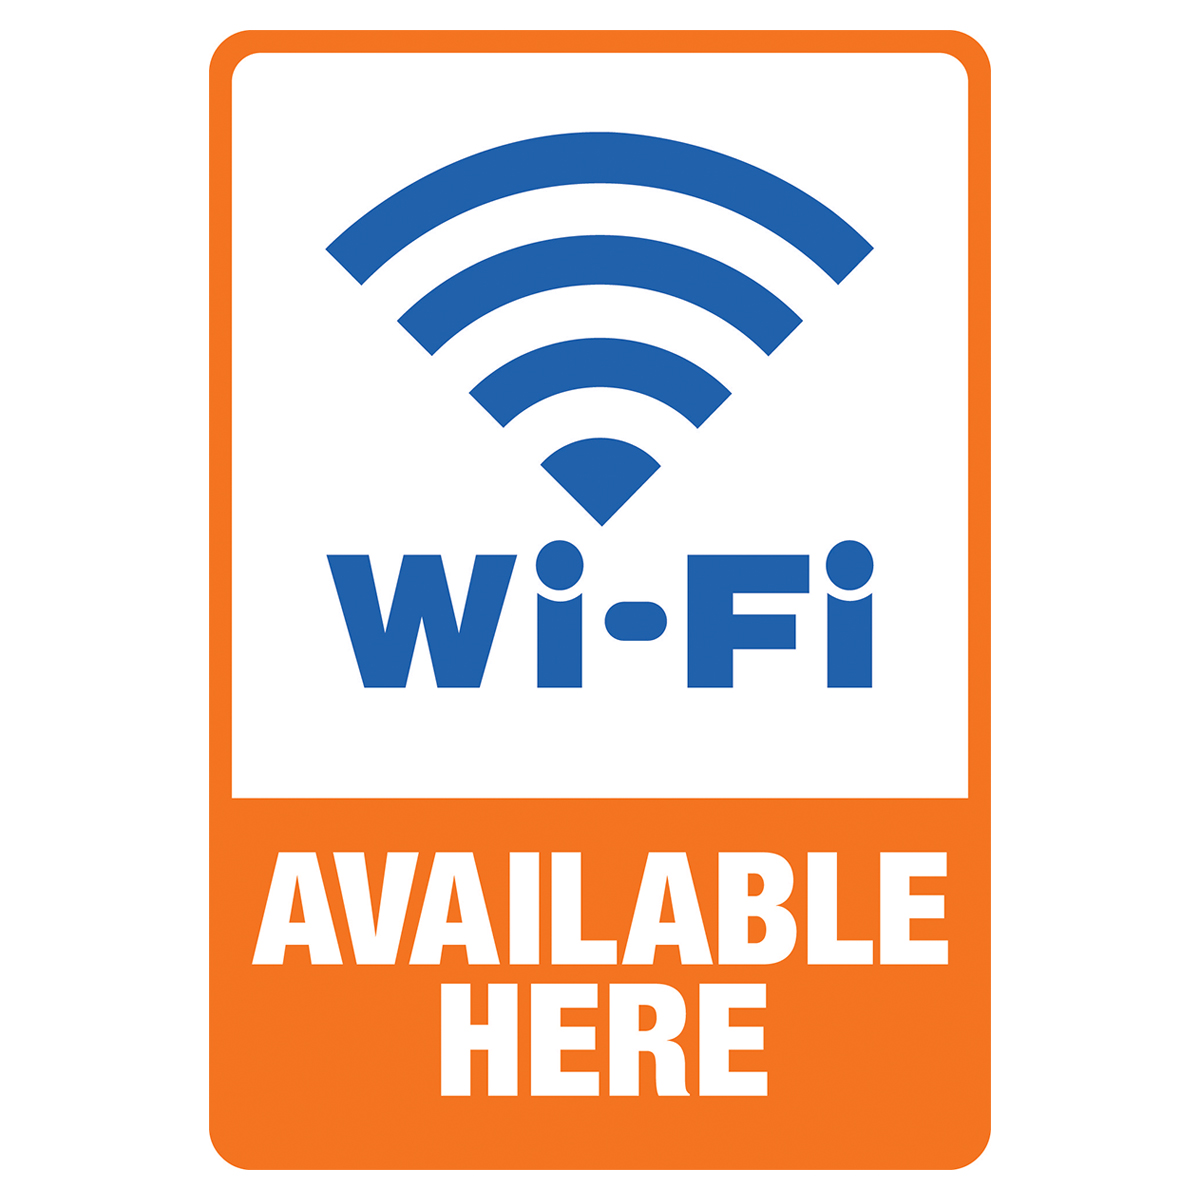 WiFi Available Here - Decal